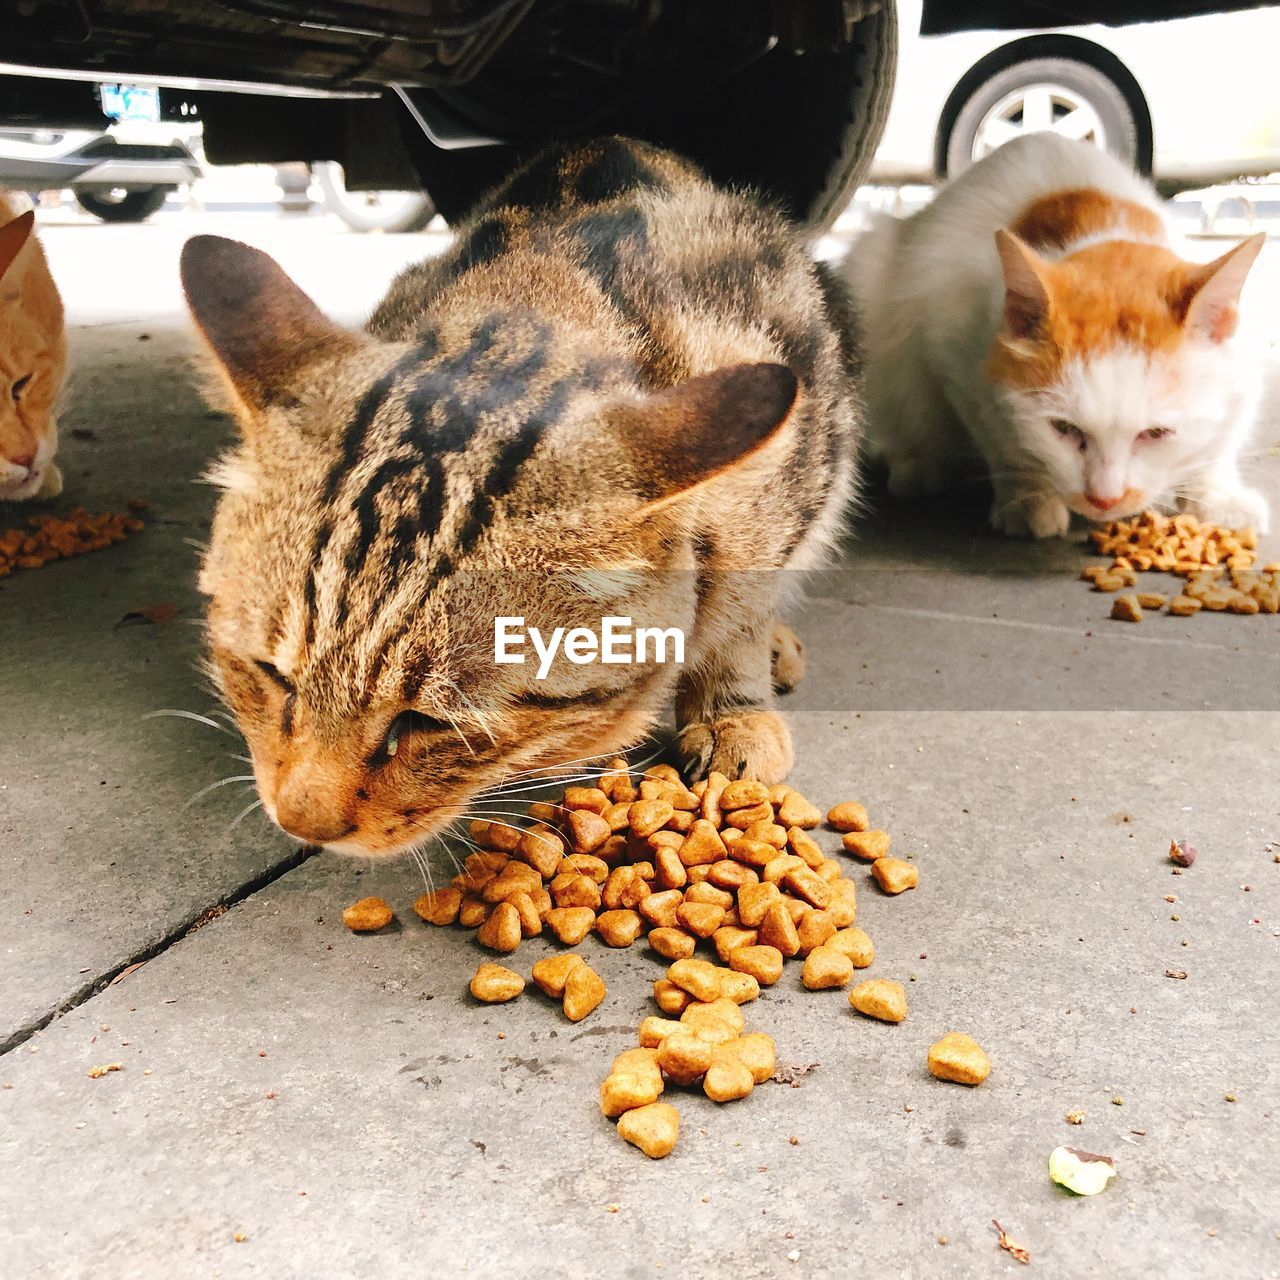 animal, pets, mammal, animal themes, domestic animals, domestic, cat, domestic cat, feline, vertebrate, one animal, no people, motor vehicle, car, food, mode of transportation, transportation, food and drink, day, whisker